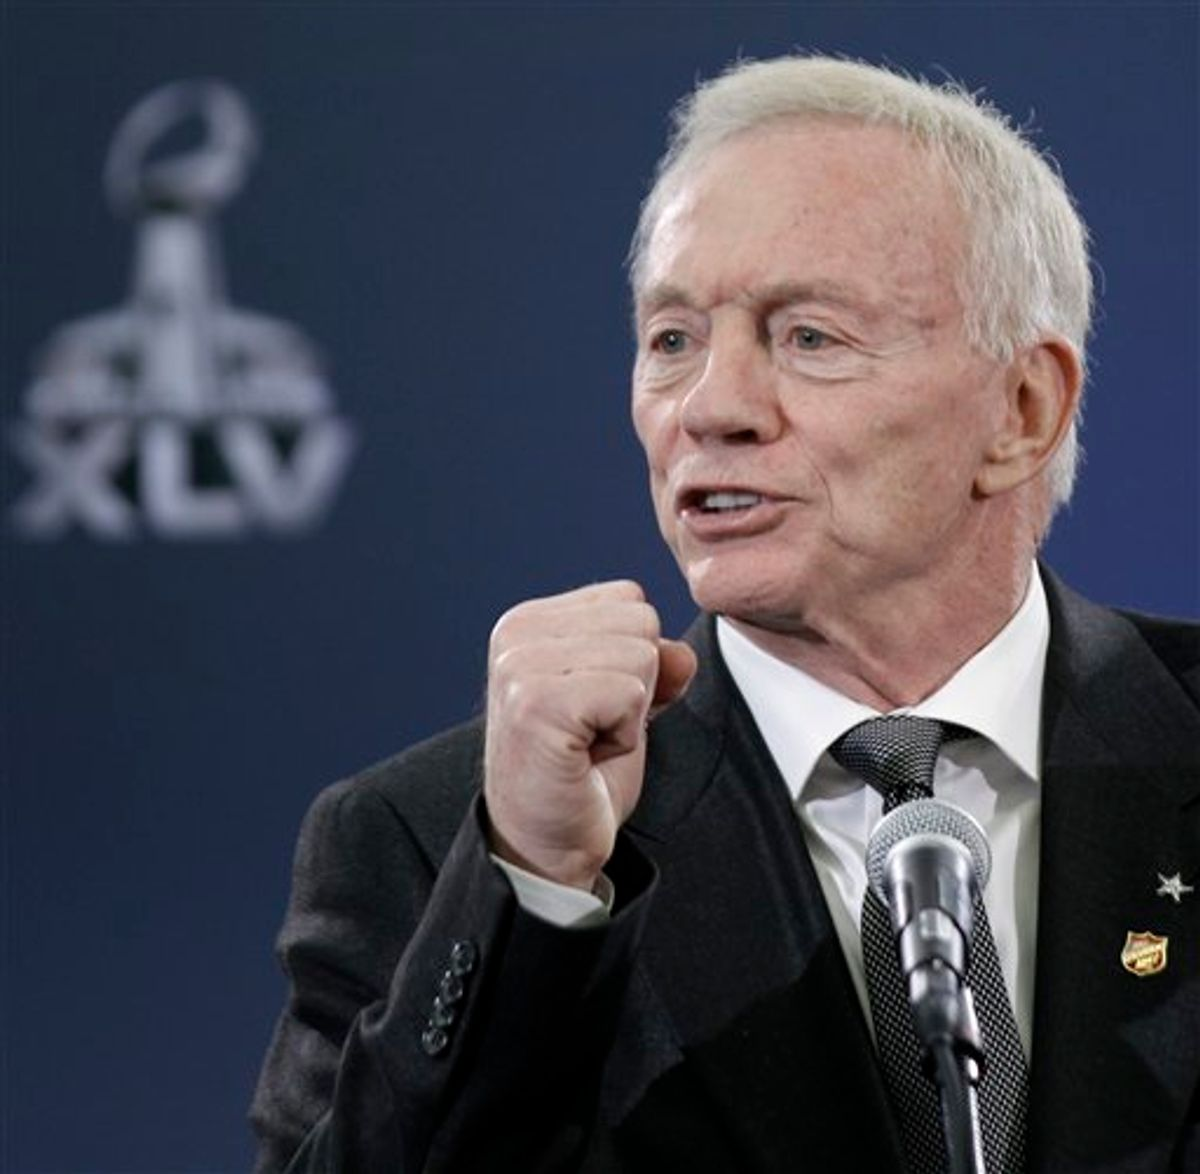 Dallas Cowboys owner Jerry Jones talks about his team during a news conference Tuesday, Feb. 1, 2011, in Dallas. The Pittsburgh Steelers will play the Green Bay Packers in Super Bowl XLV at Cowboys Stadium Sunday, Feb. 6, 2011. (AP Photo/David J. Phillip) (AP)